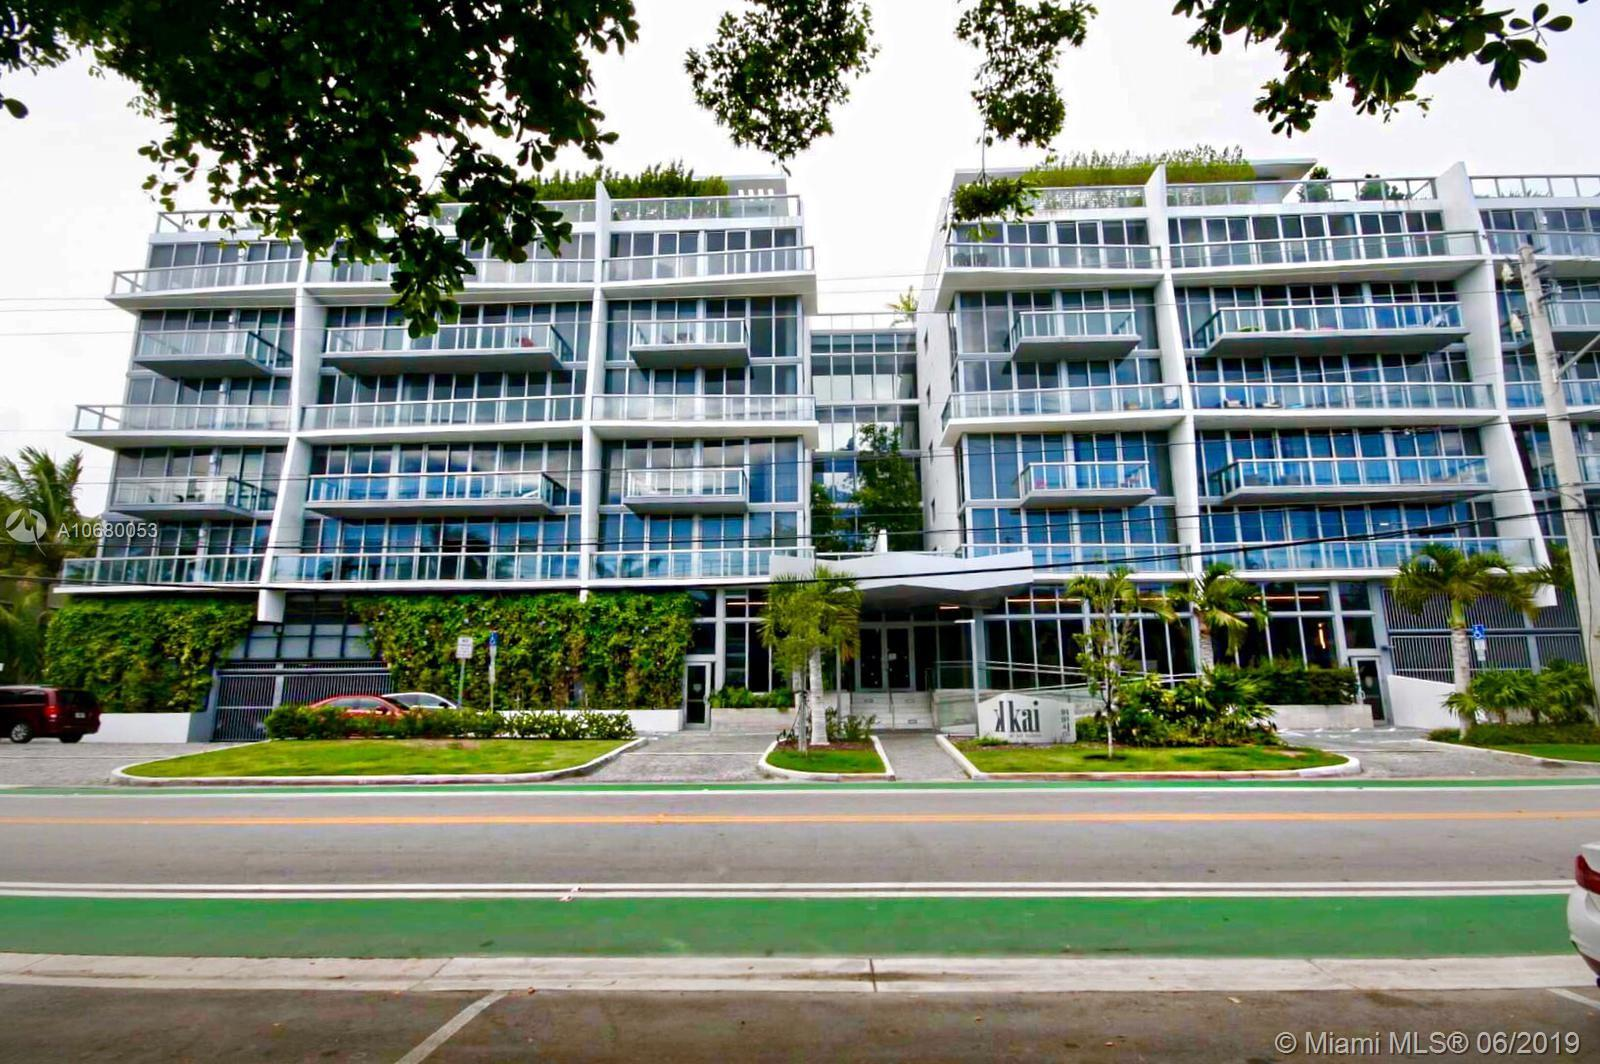 Gorgeous 2 bed / 2 bath corner unit in the top floor with rare 2 garage spaces without the need for lift. Kai at Bay Harbor is in the heart of Bay Harbor Islands, with marina, gym and a beautiful rooftop pool. Very easy to show!